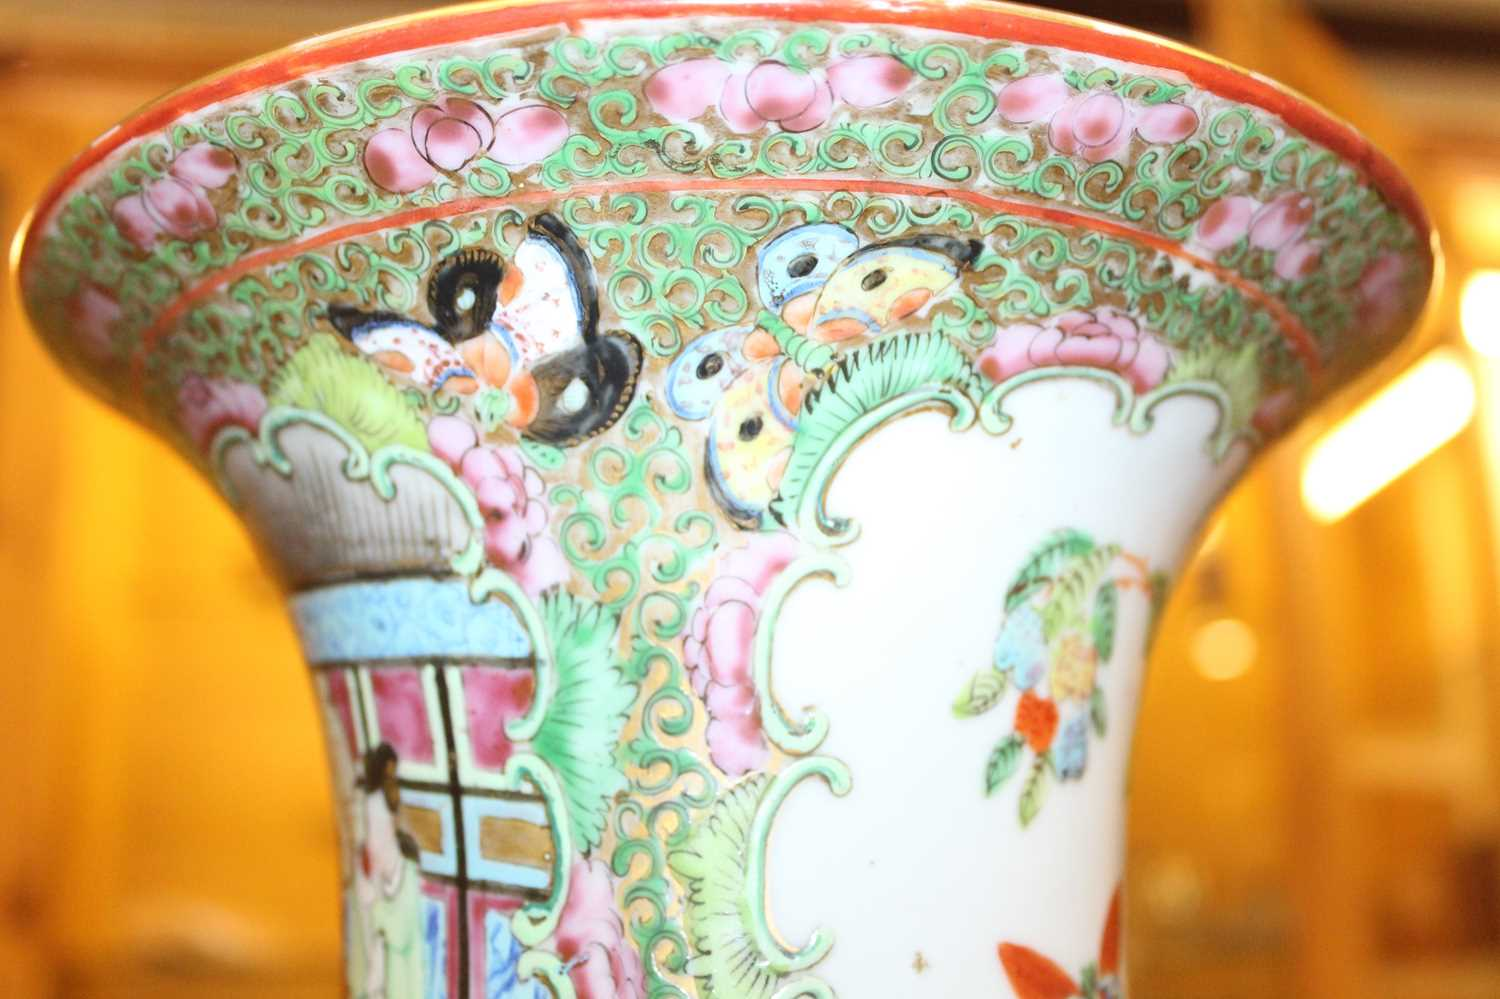 A 19th century Chinese Canton famille rose vase, enamel decorated with ceremonial figure scenes - Image 16 of 18